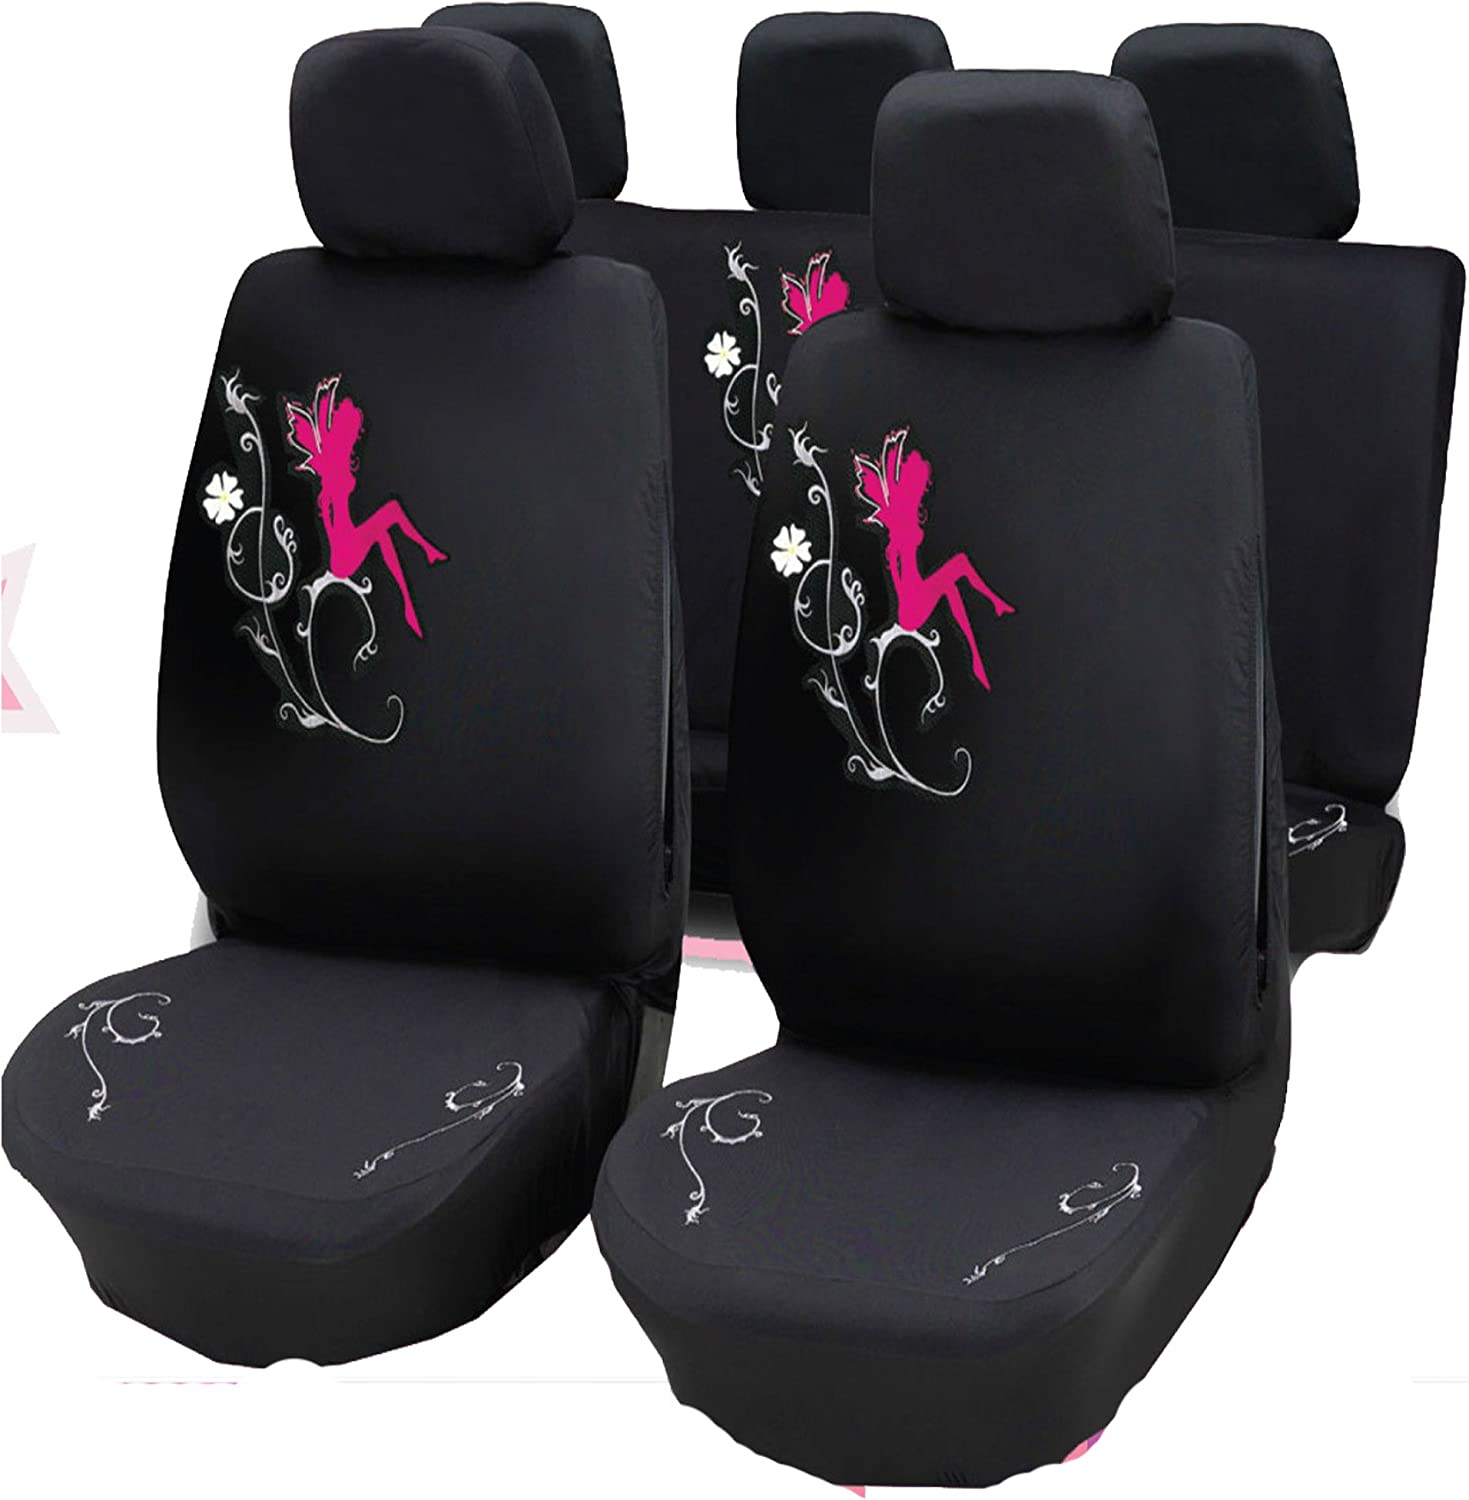 Wheels N Bits Hearts and Fairy Seat Covers Full Set Air Bag Ready Front /& Rear